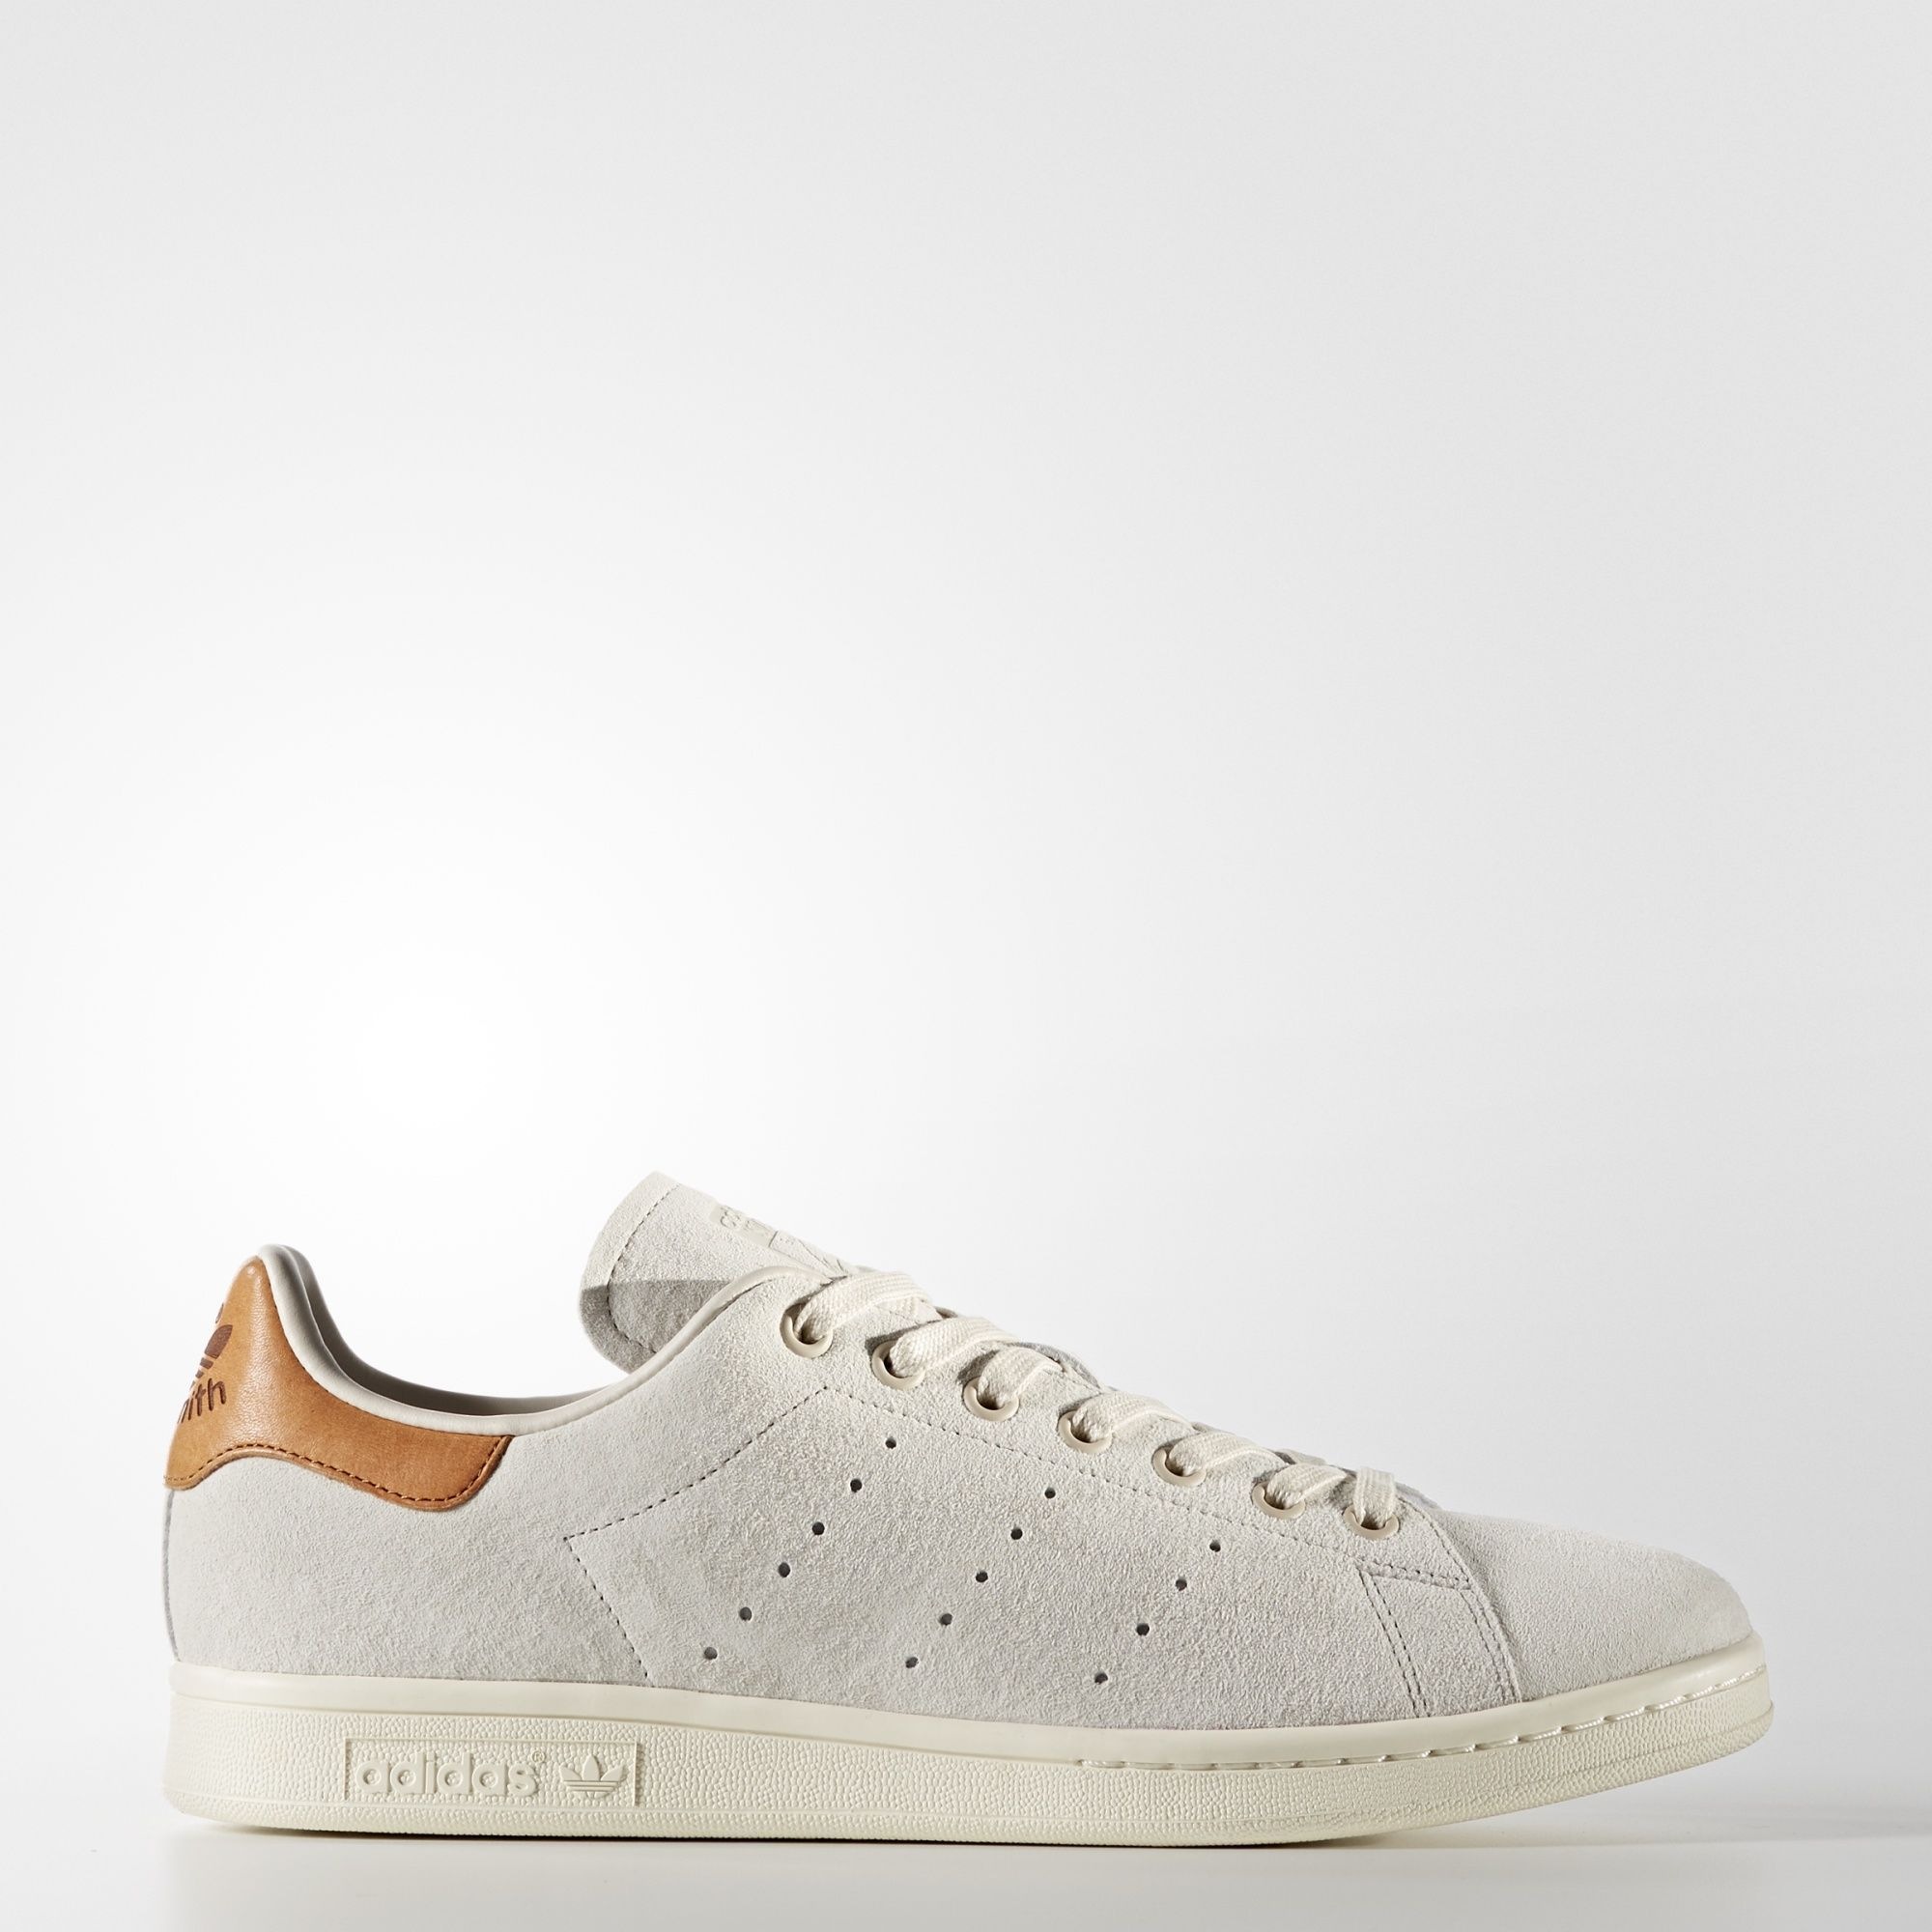 Le sneaker Stan Smith taupe Femme | Adidas Originals